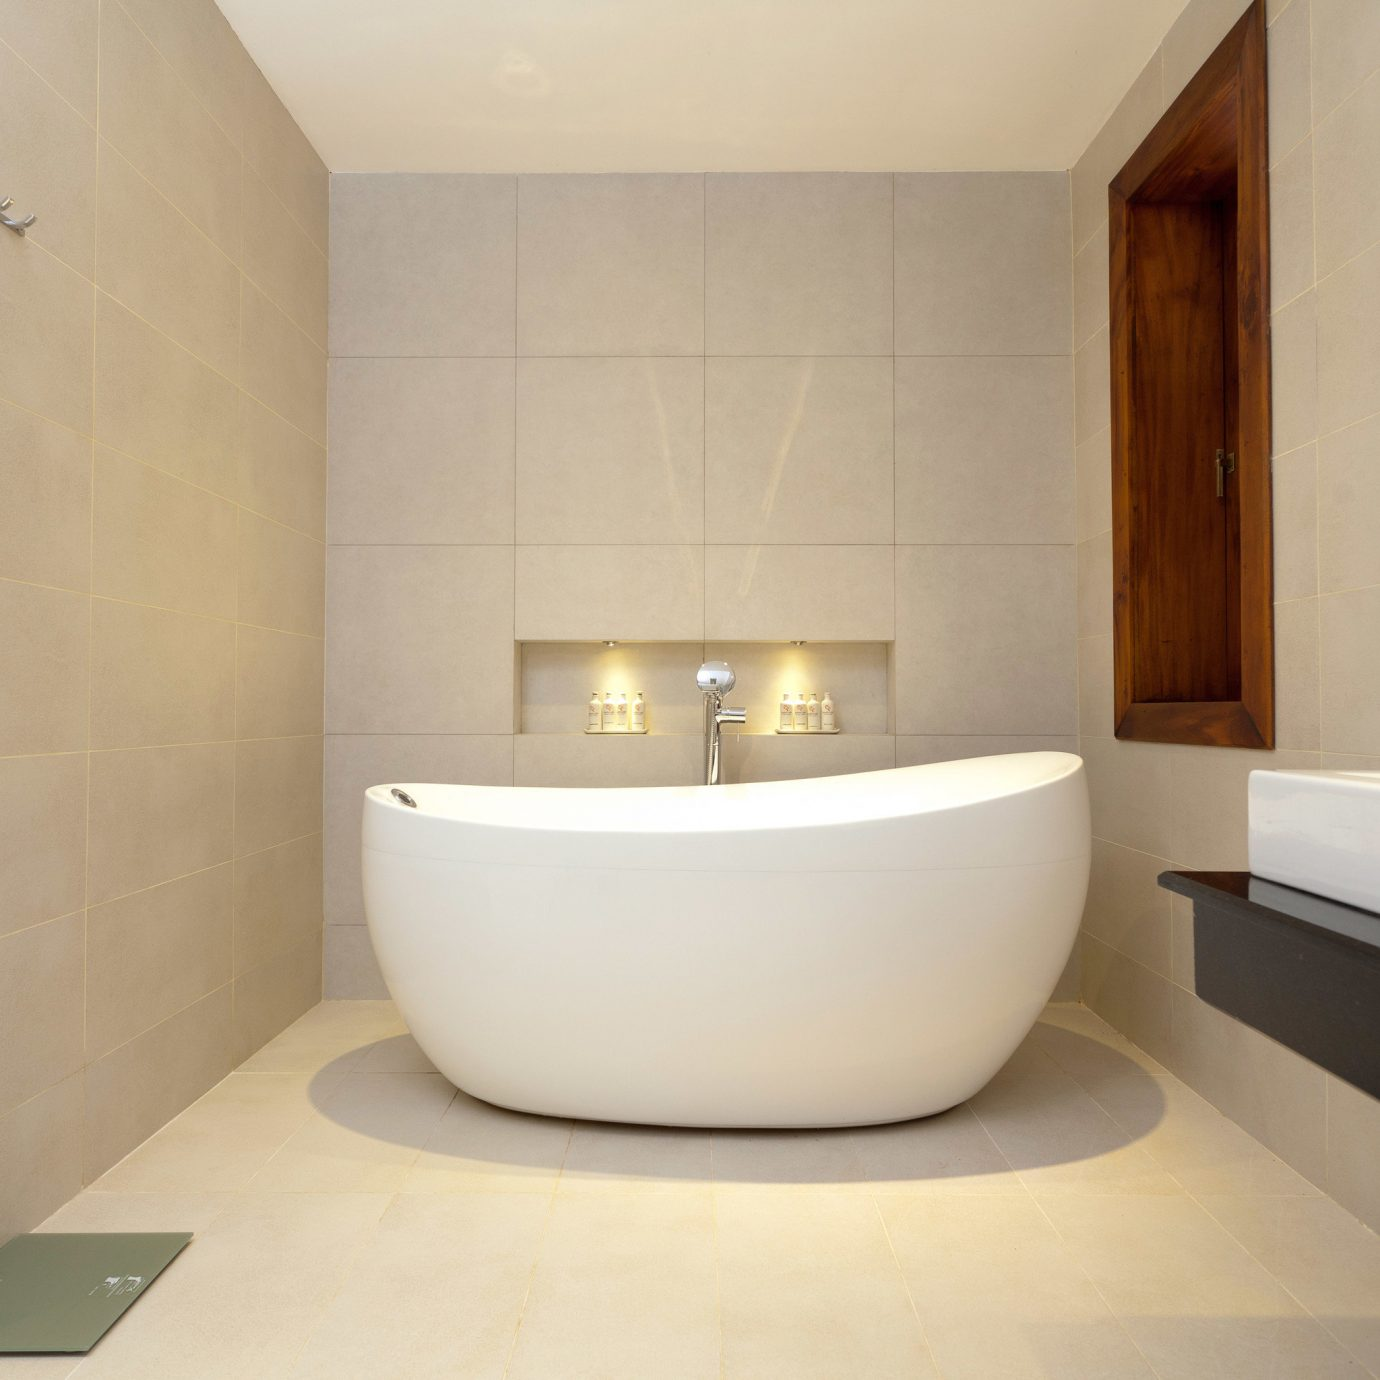 property bathtub bathroom plumbing fixture bidet Suite swimming pool flooring jacuzzi tub Bath tan